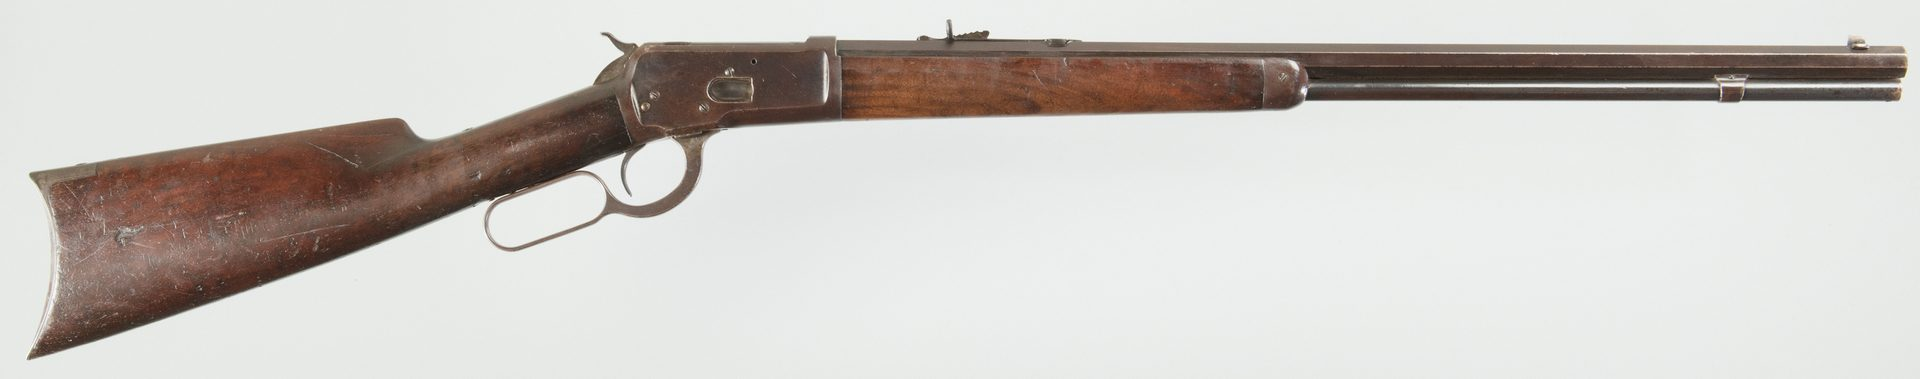 Lot 797: Winchester Model 1892, 25-20 Lever action Rifle